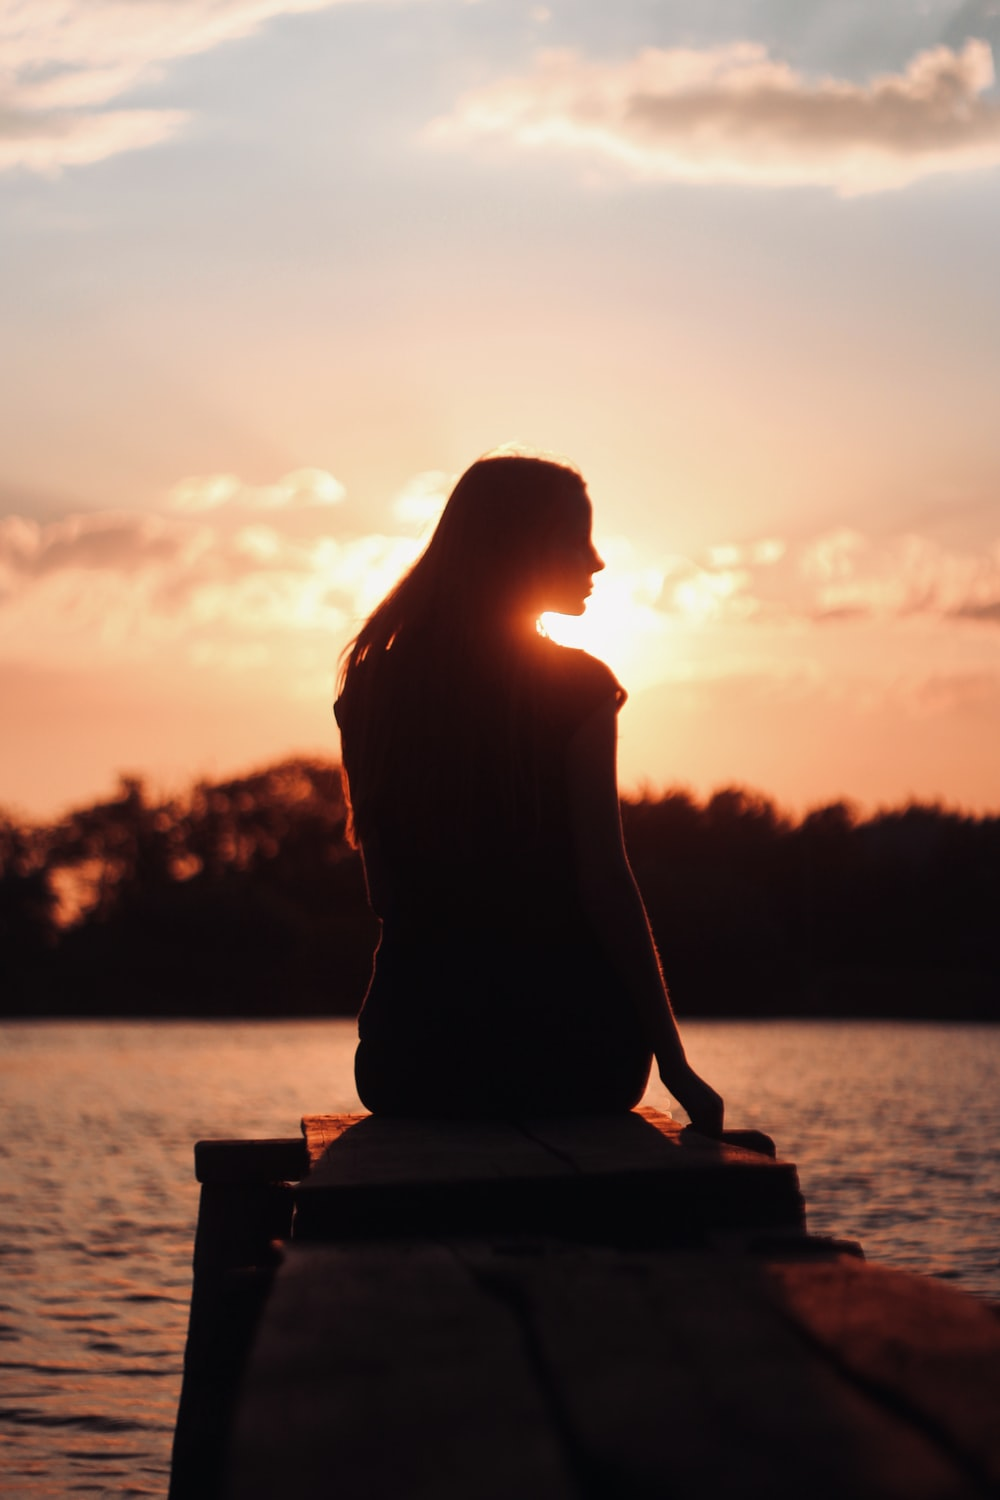 silhouette of woman sitting on brown wooden bench during sunset